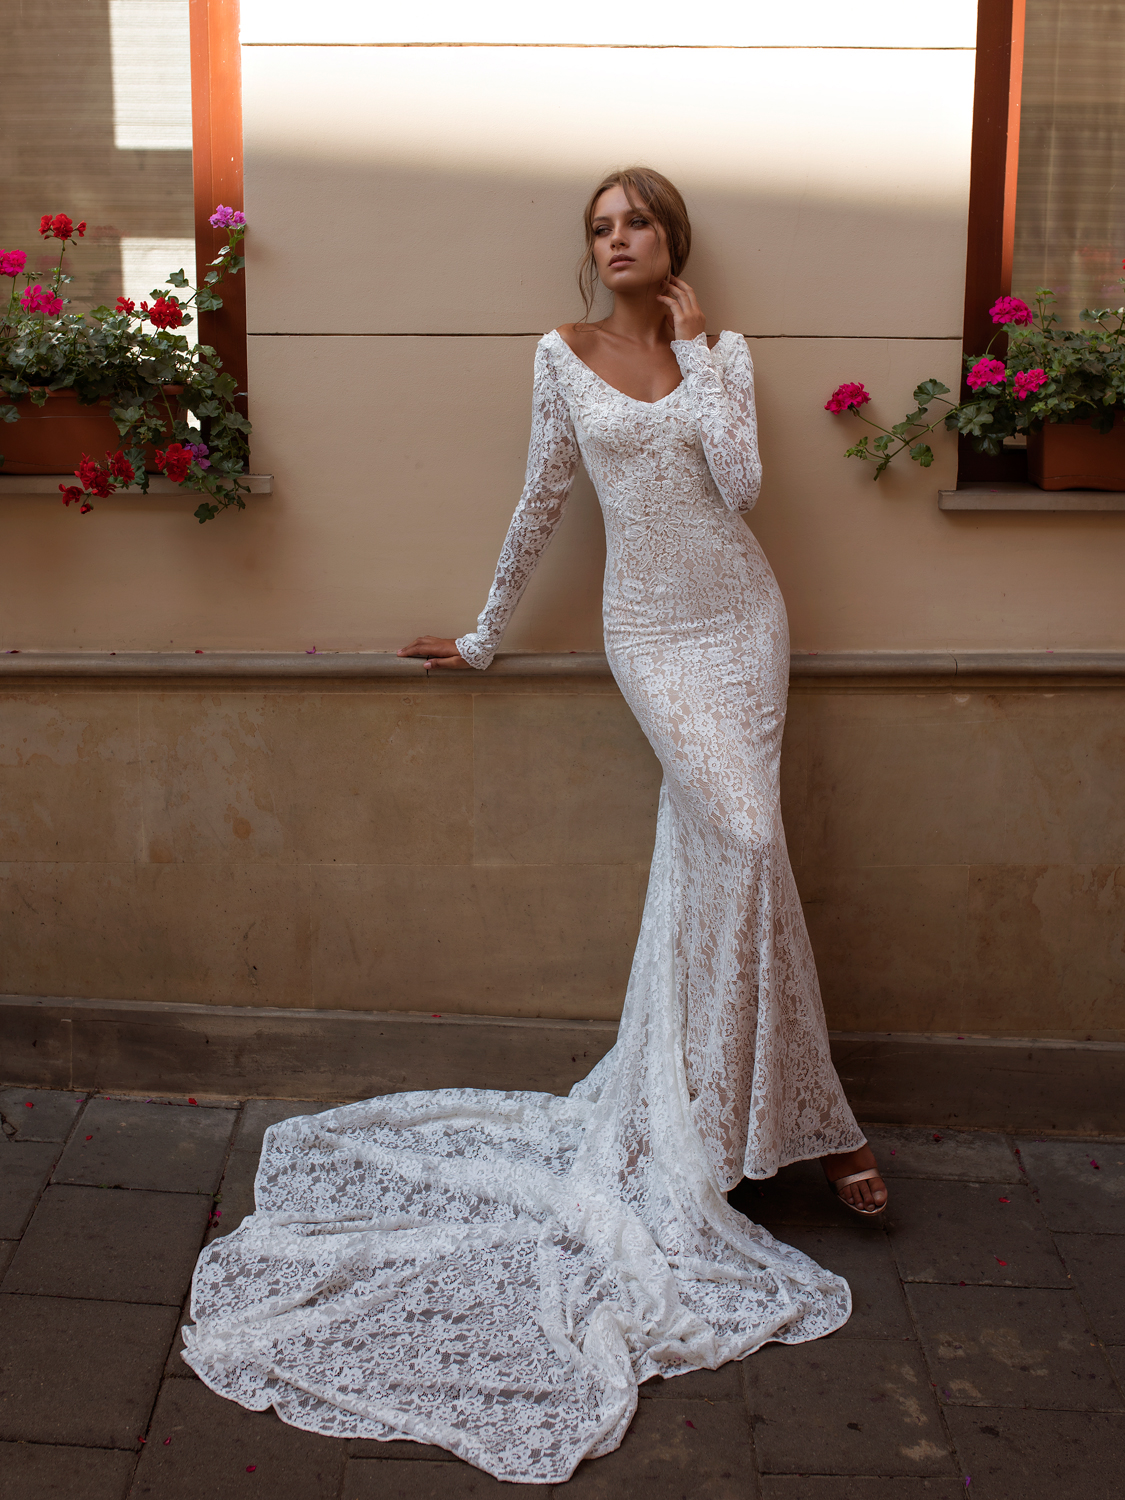 liri_designer_Wedding_Dress_Hili.jpg